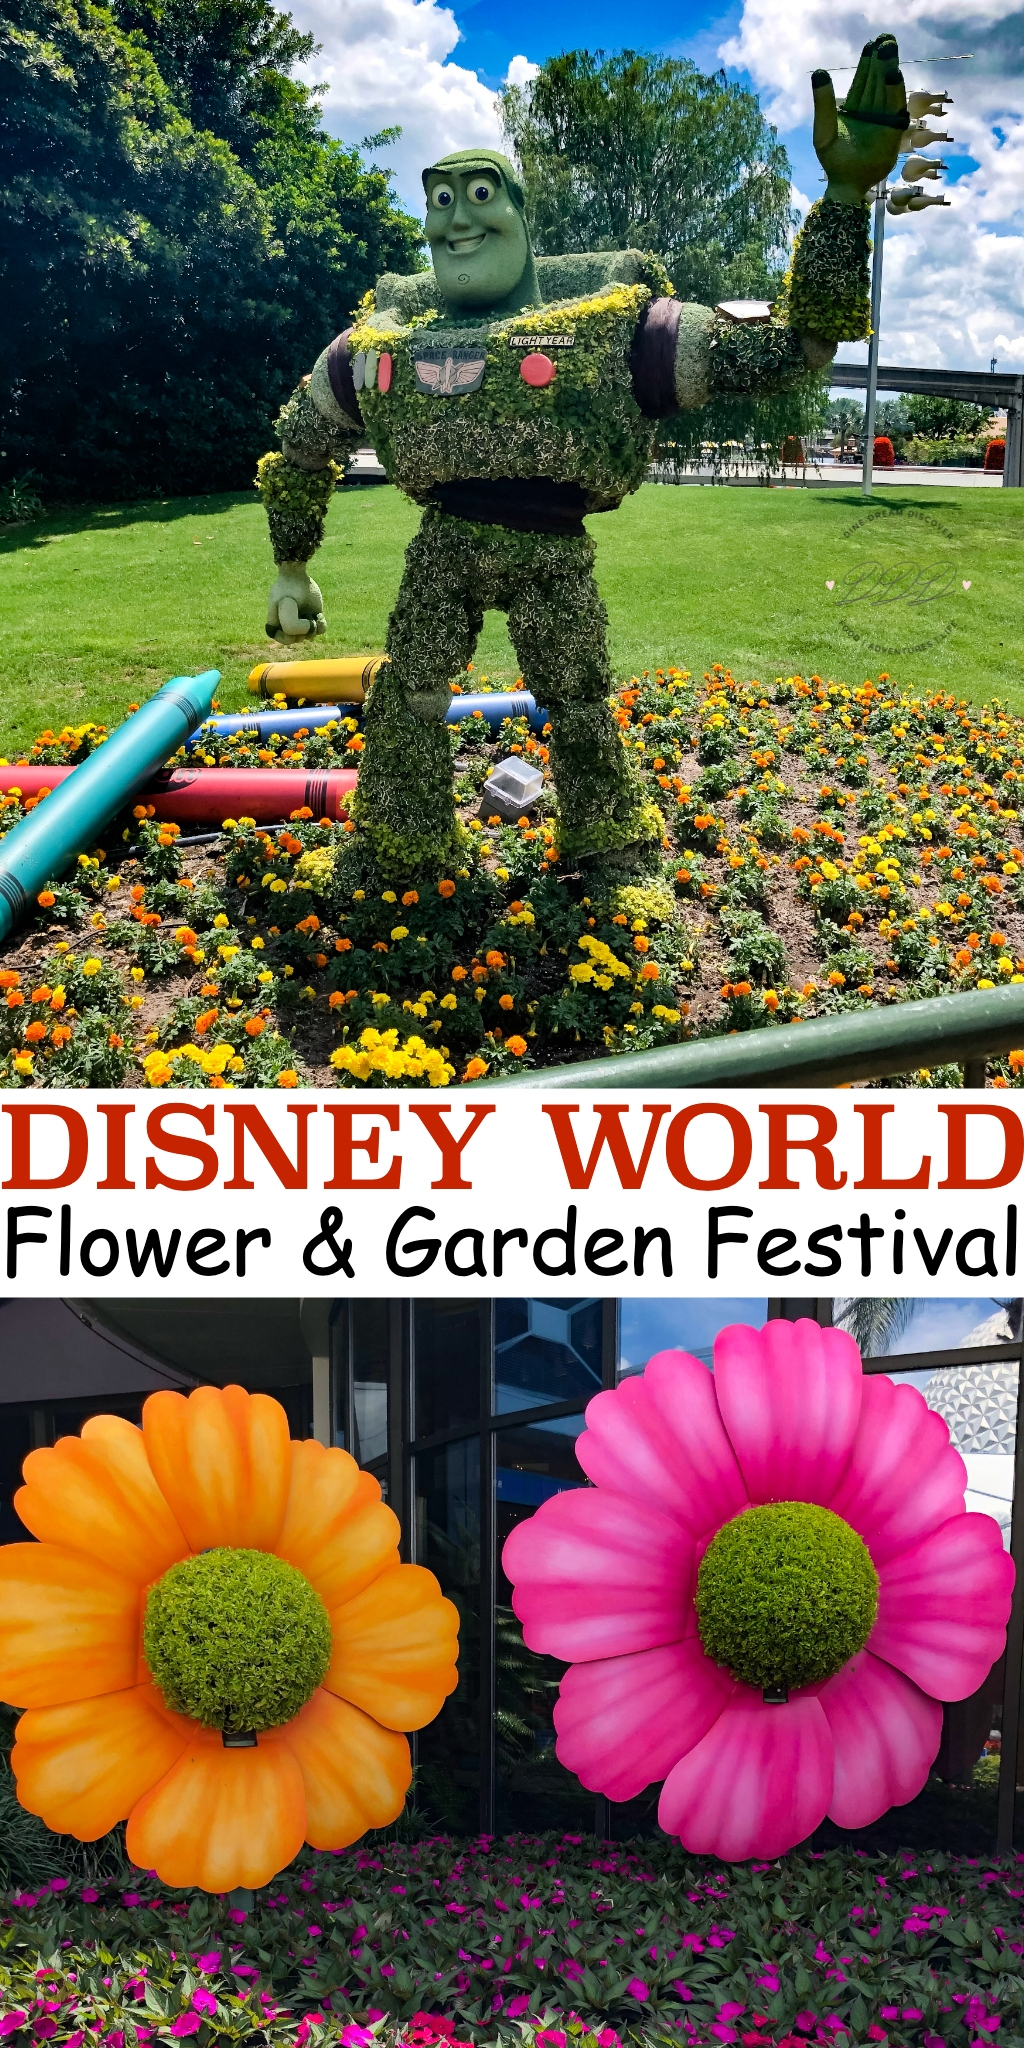 The International Flower and Garden Festival at Epcot is the perfect picture of spring. It's also an event that highlights the beauty of Disney horticulture.